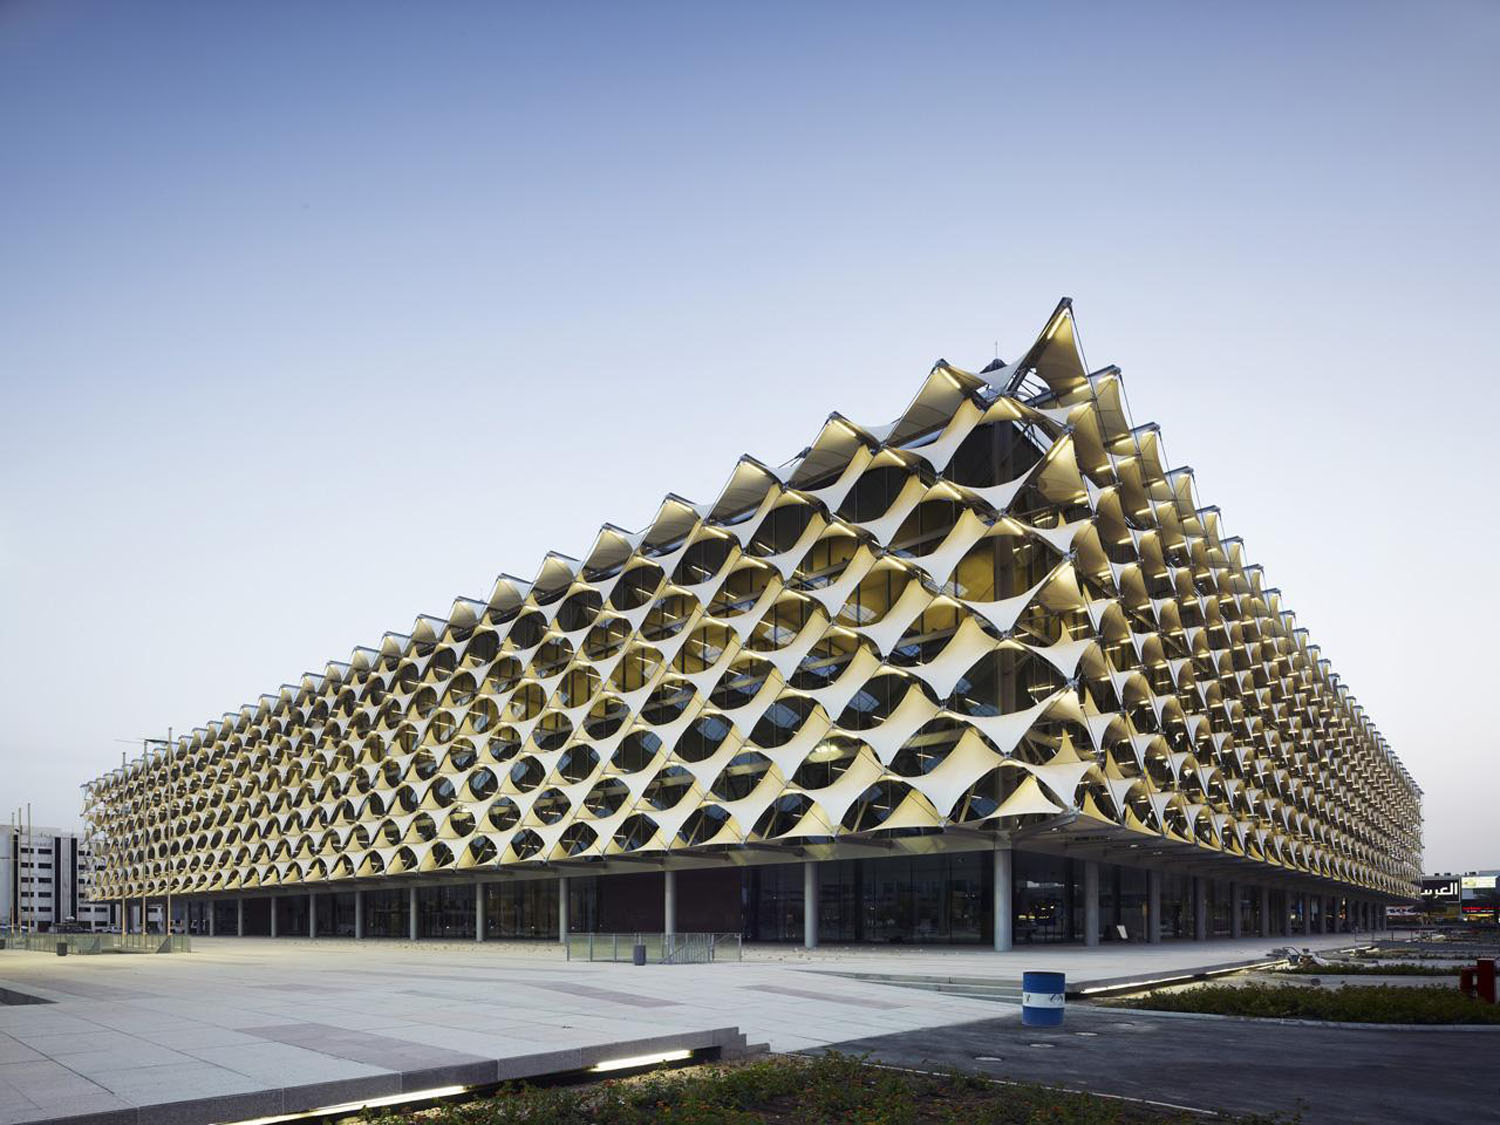 King Fahad National Library design by Gerber Architekten